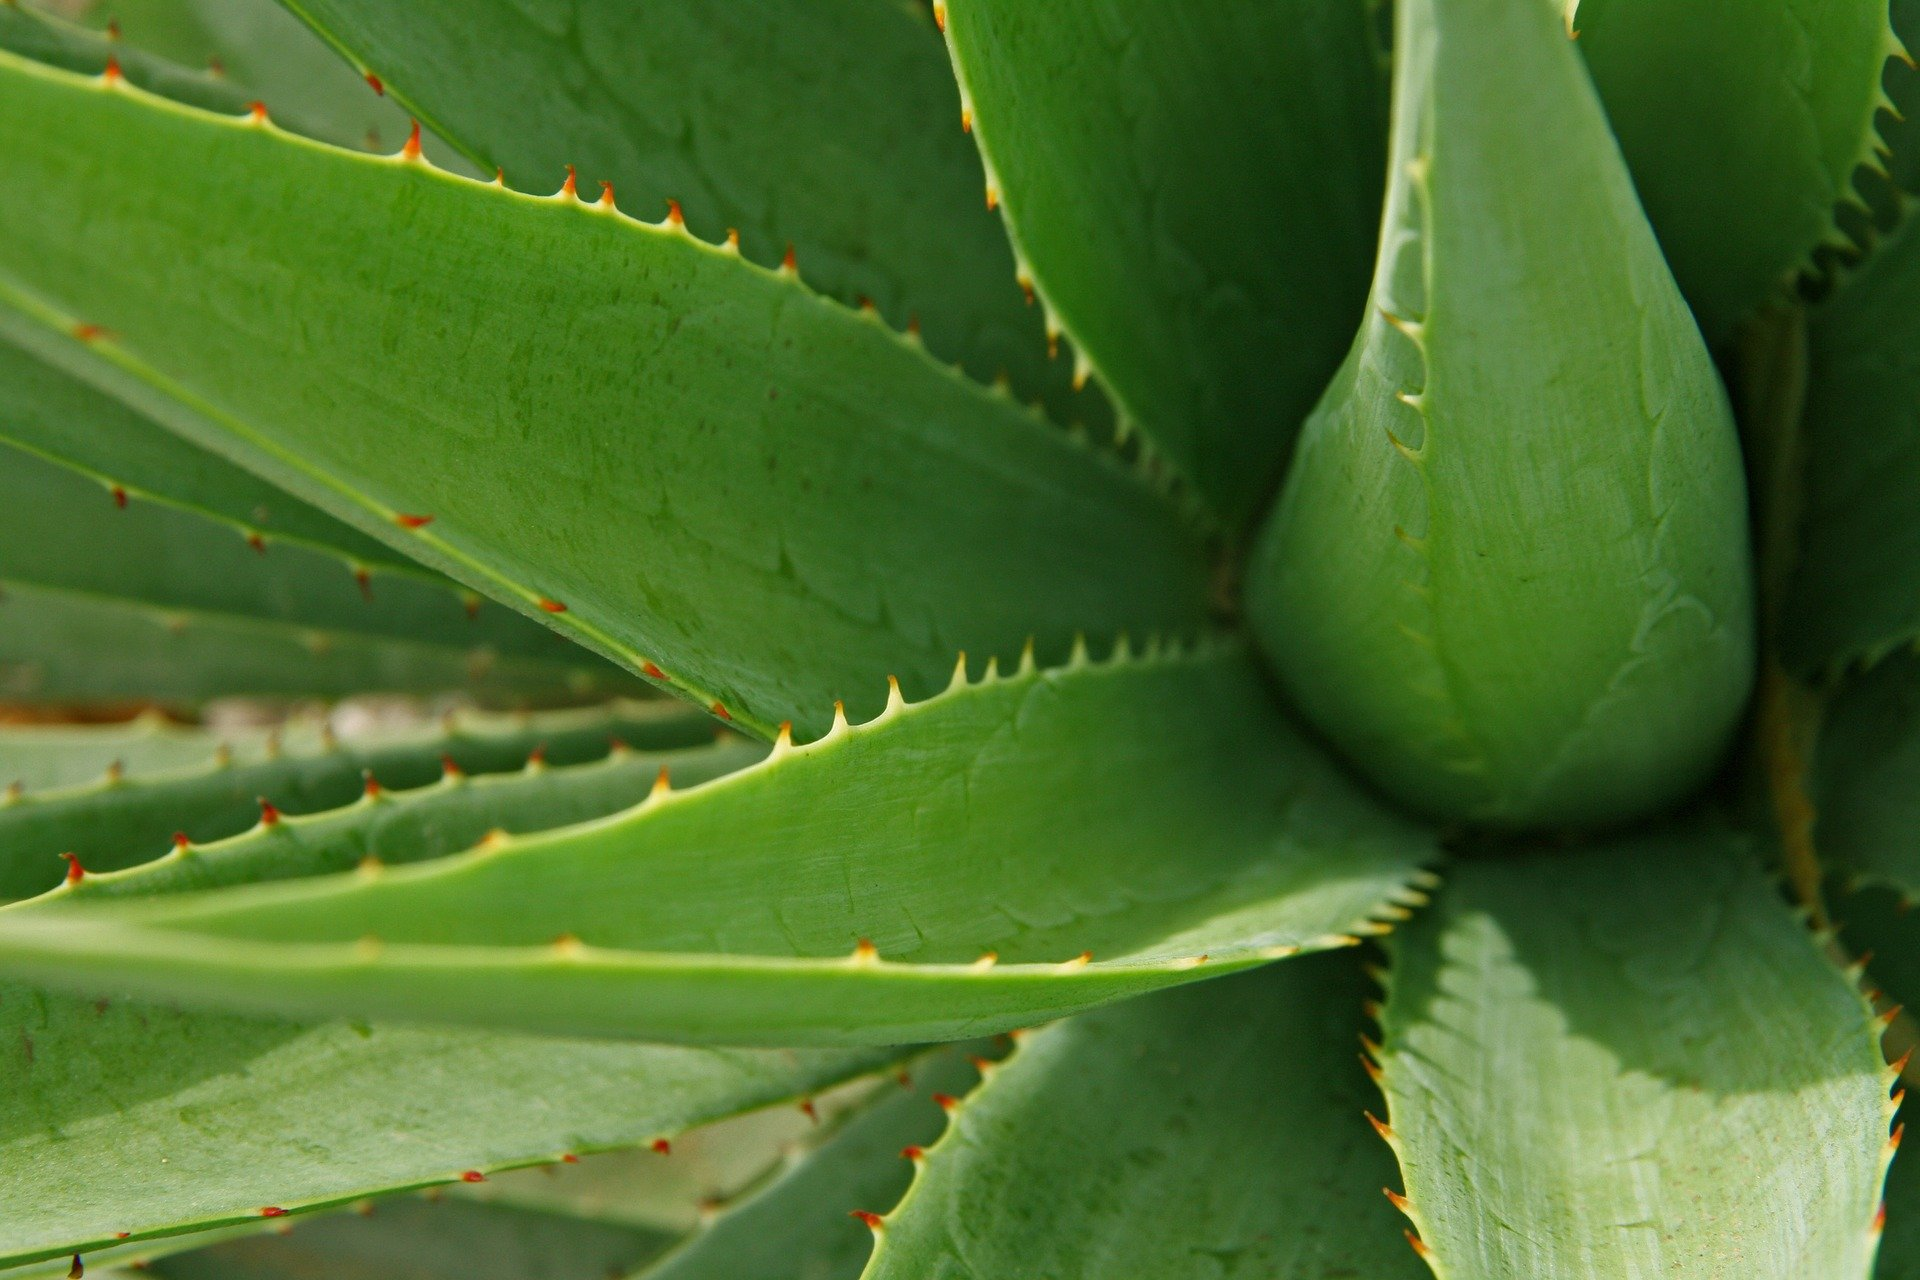 Un plant d'Aloe vera | Photo : Pixabay.